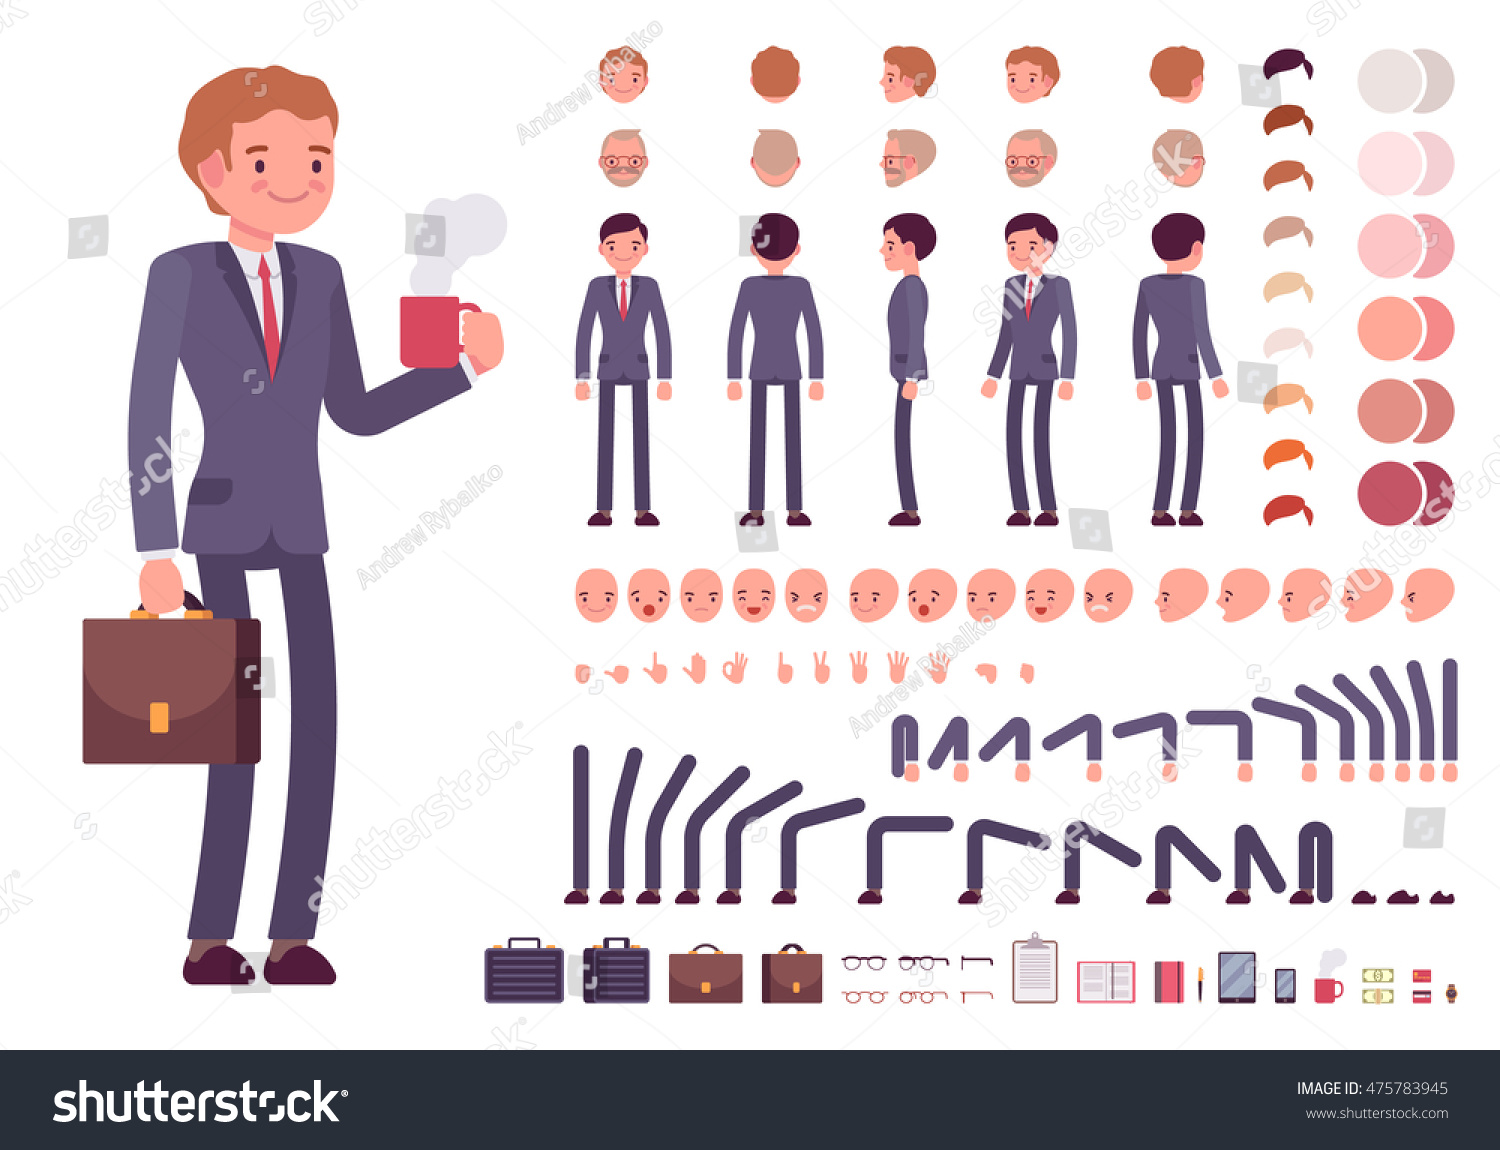 Ghiboocom Your Character And Style Businessman Character Creation Set Build Your